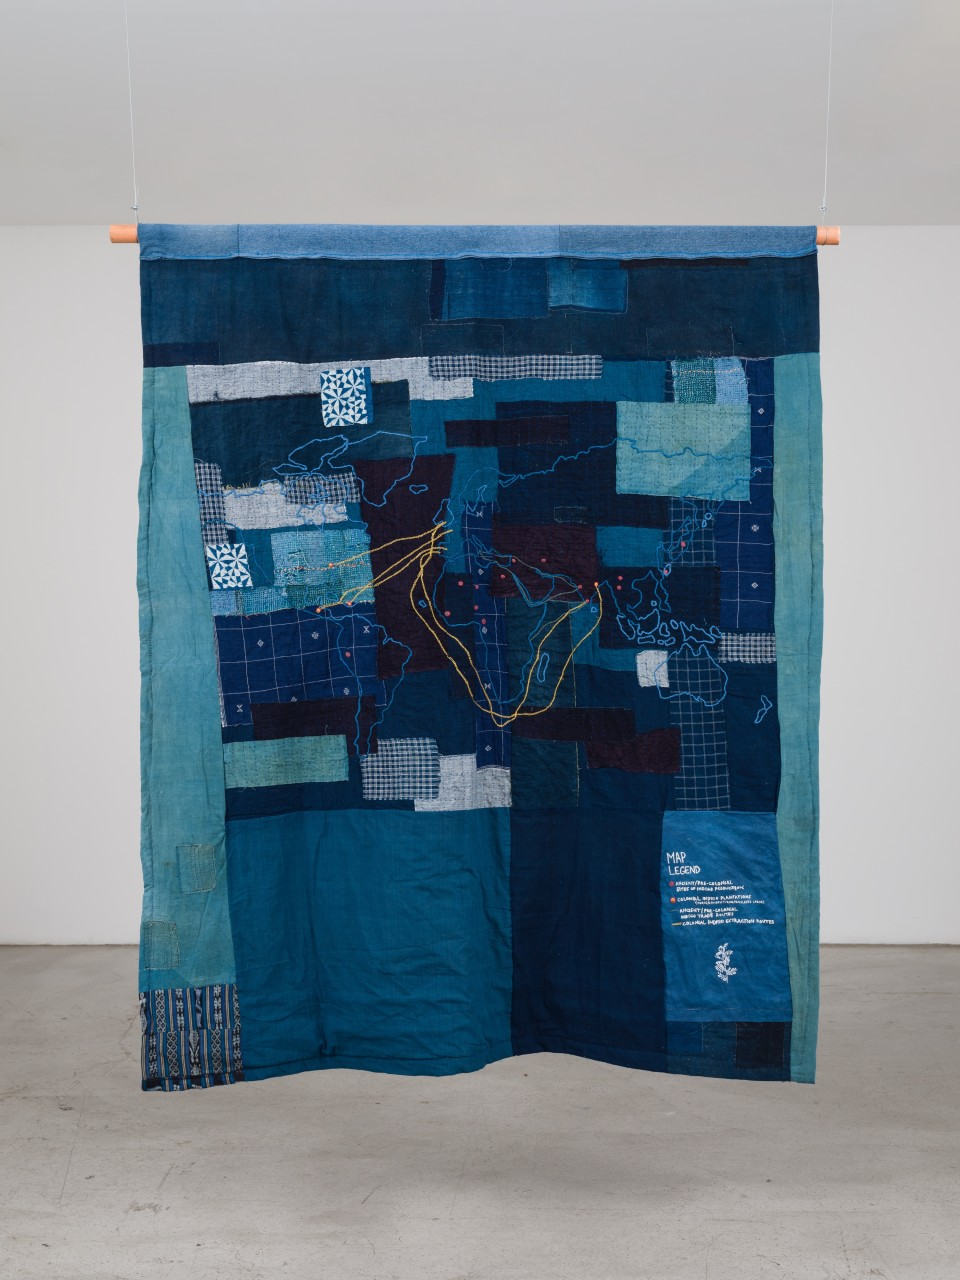 Image: Bhasha Chakrabarti  It's a Blue World, 2021  used clothing, fabric, and thread  83 x 74 inches  (BCh.21.005.85)